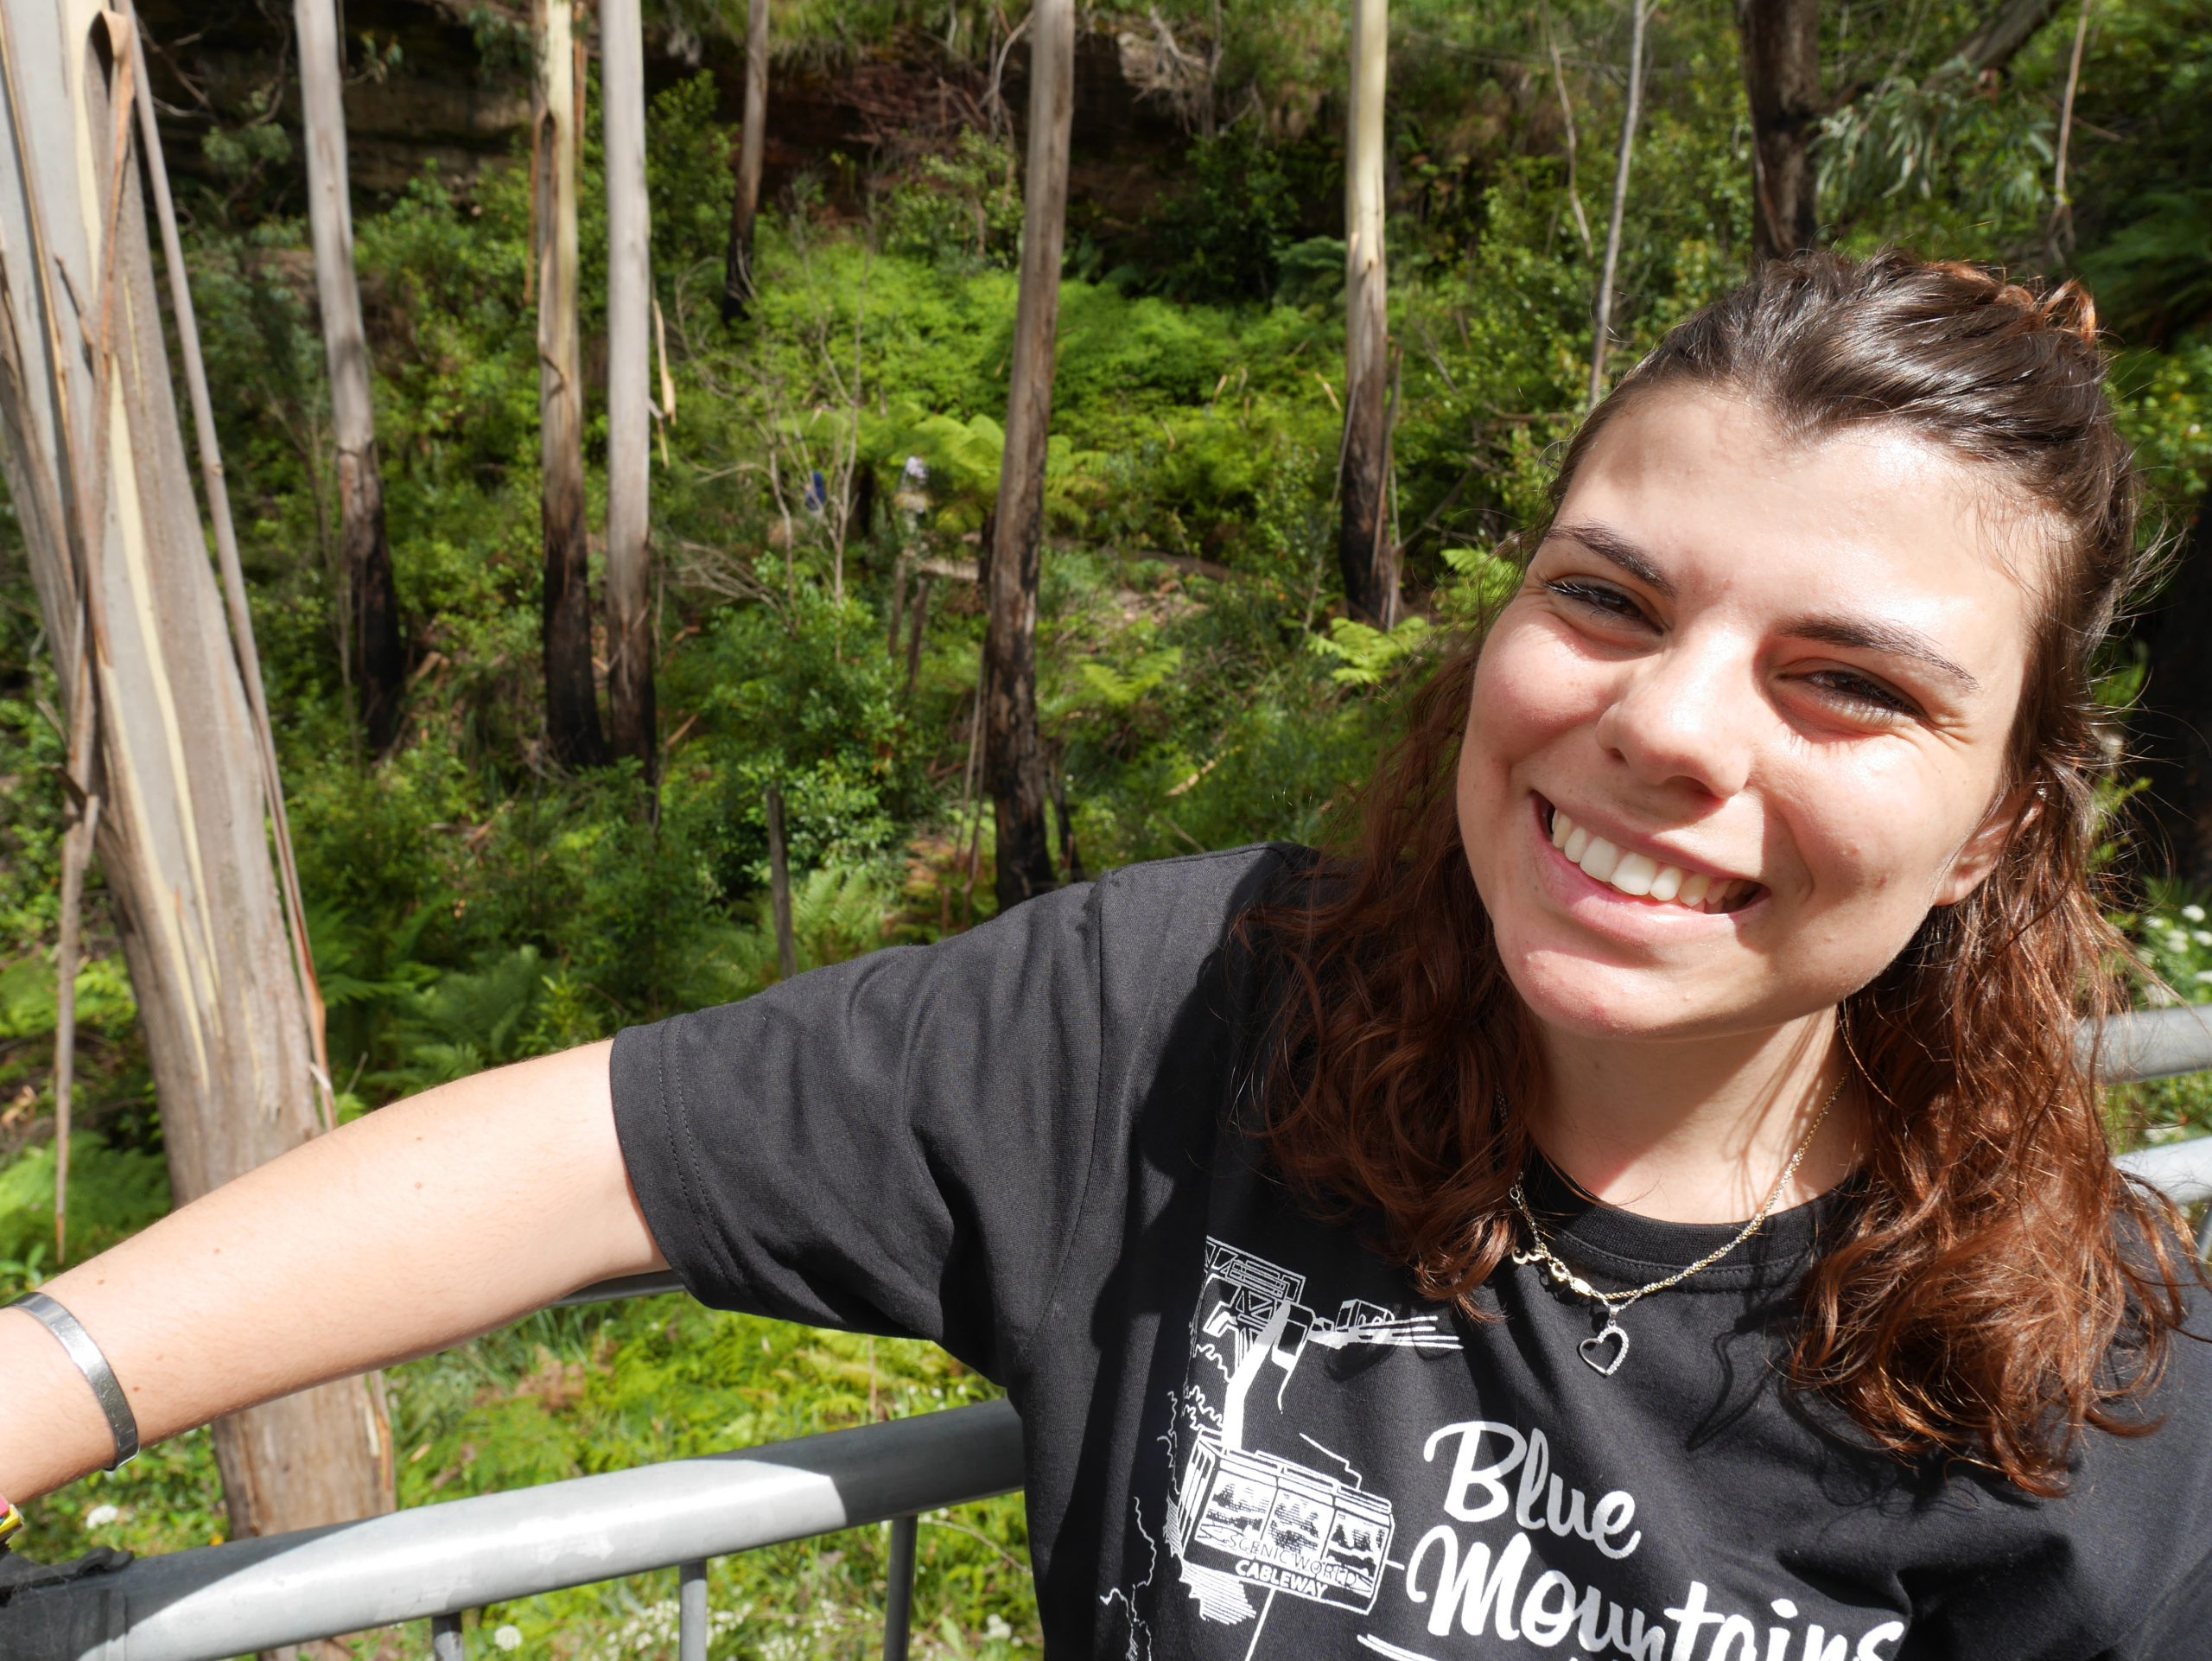 Blue mountains trip- Photo blog